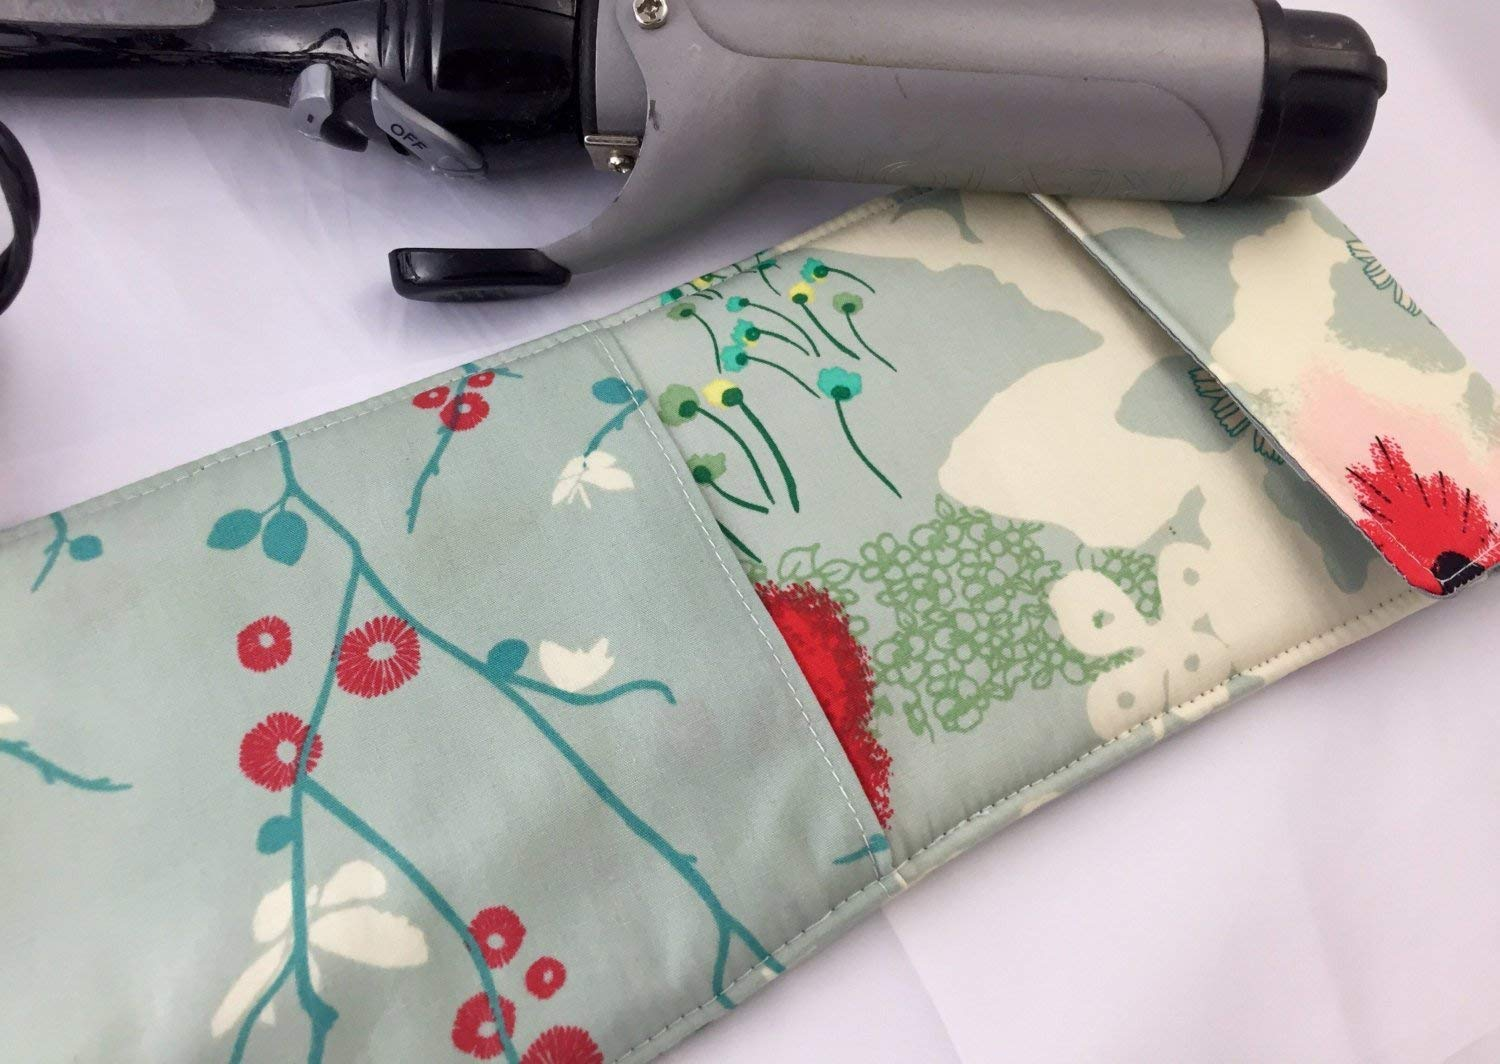 Curling Iron Holder or Flat Iron Case Dreamscape in Moon